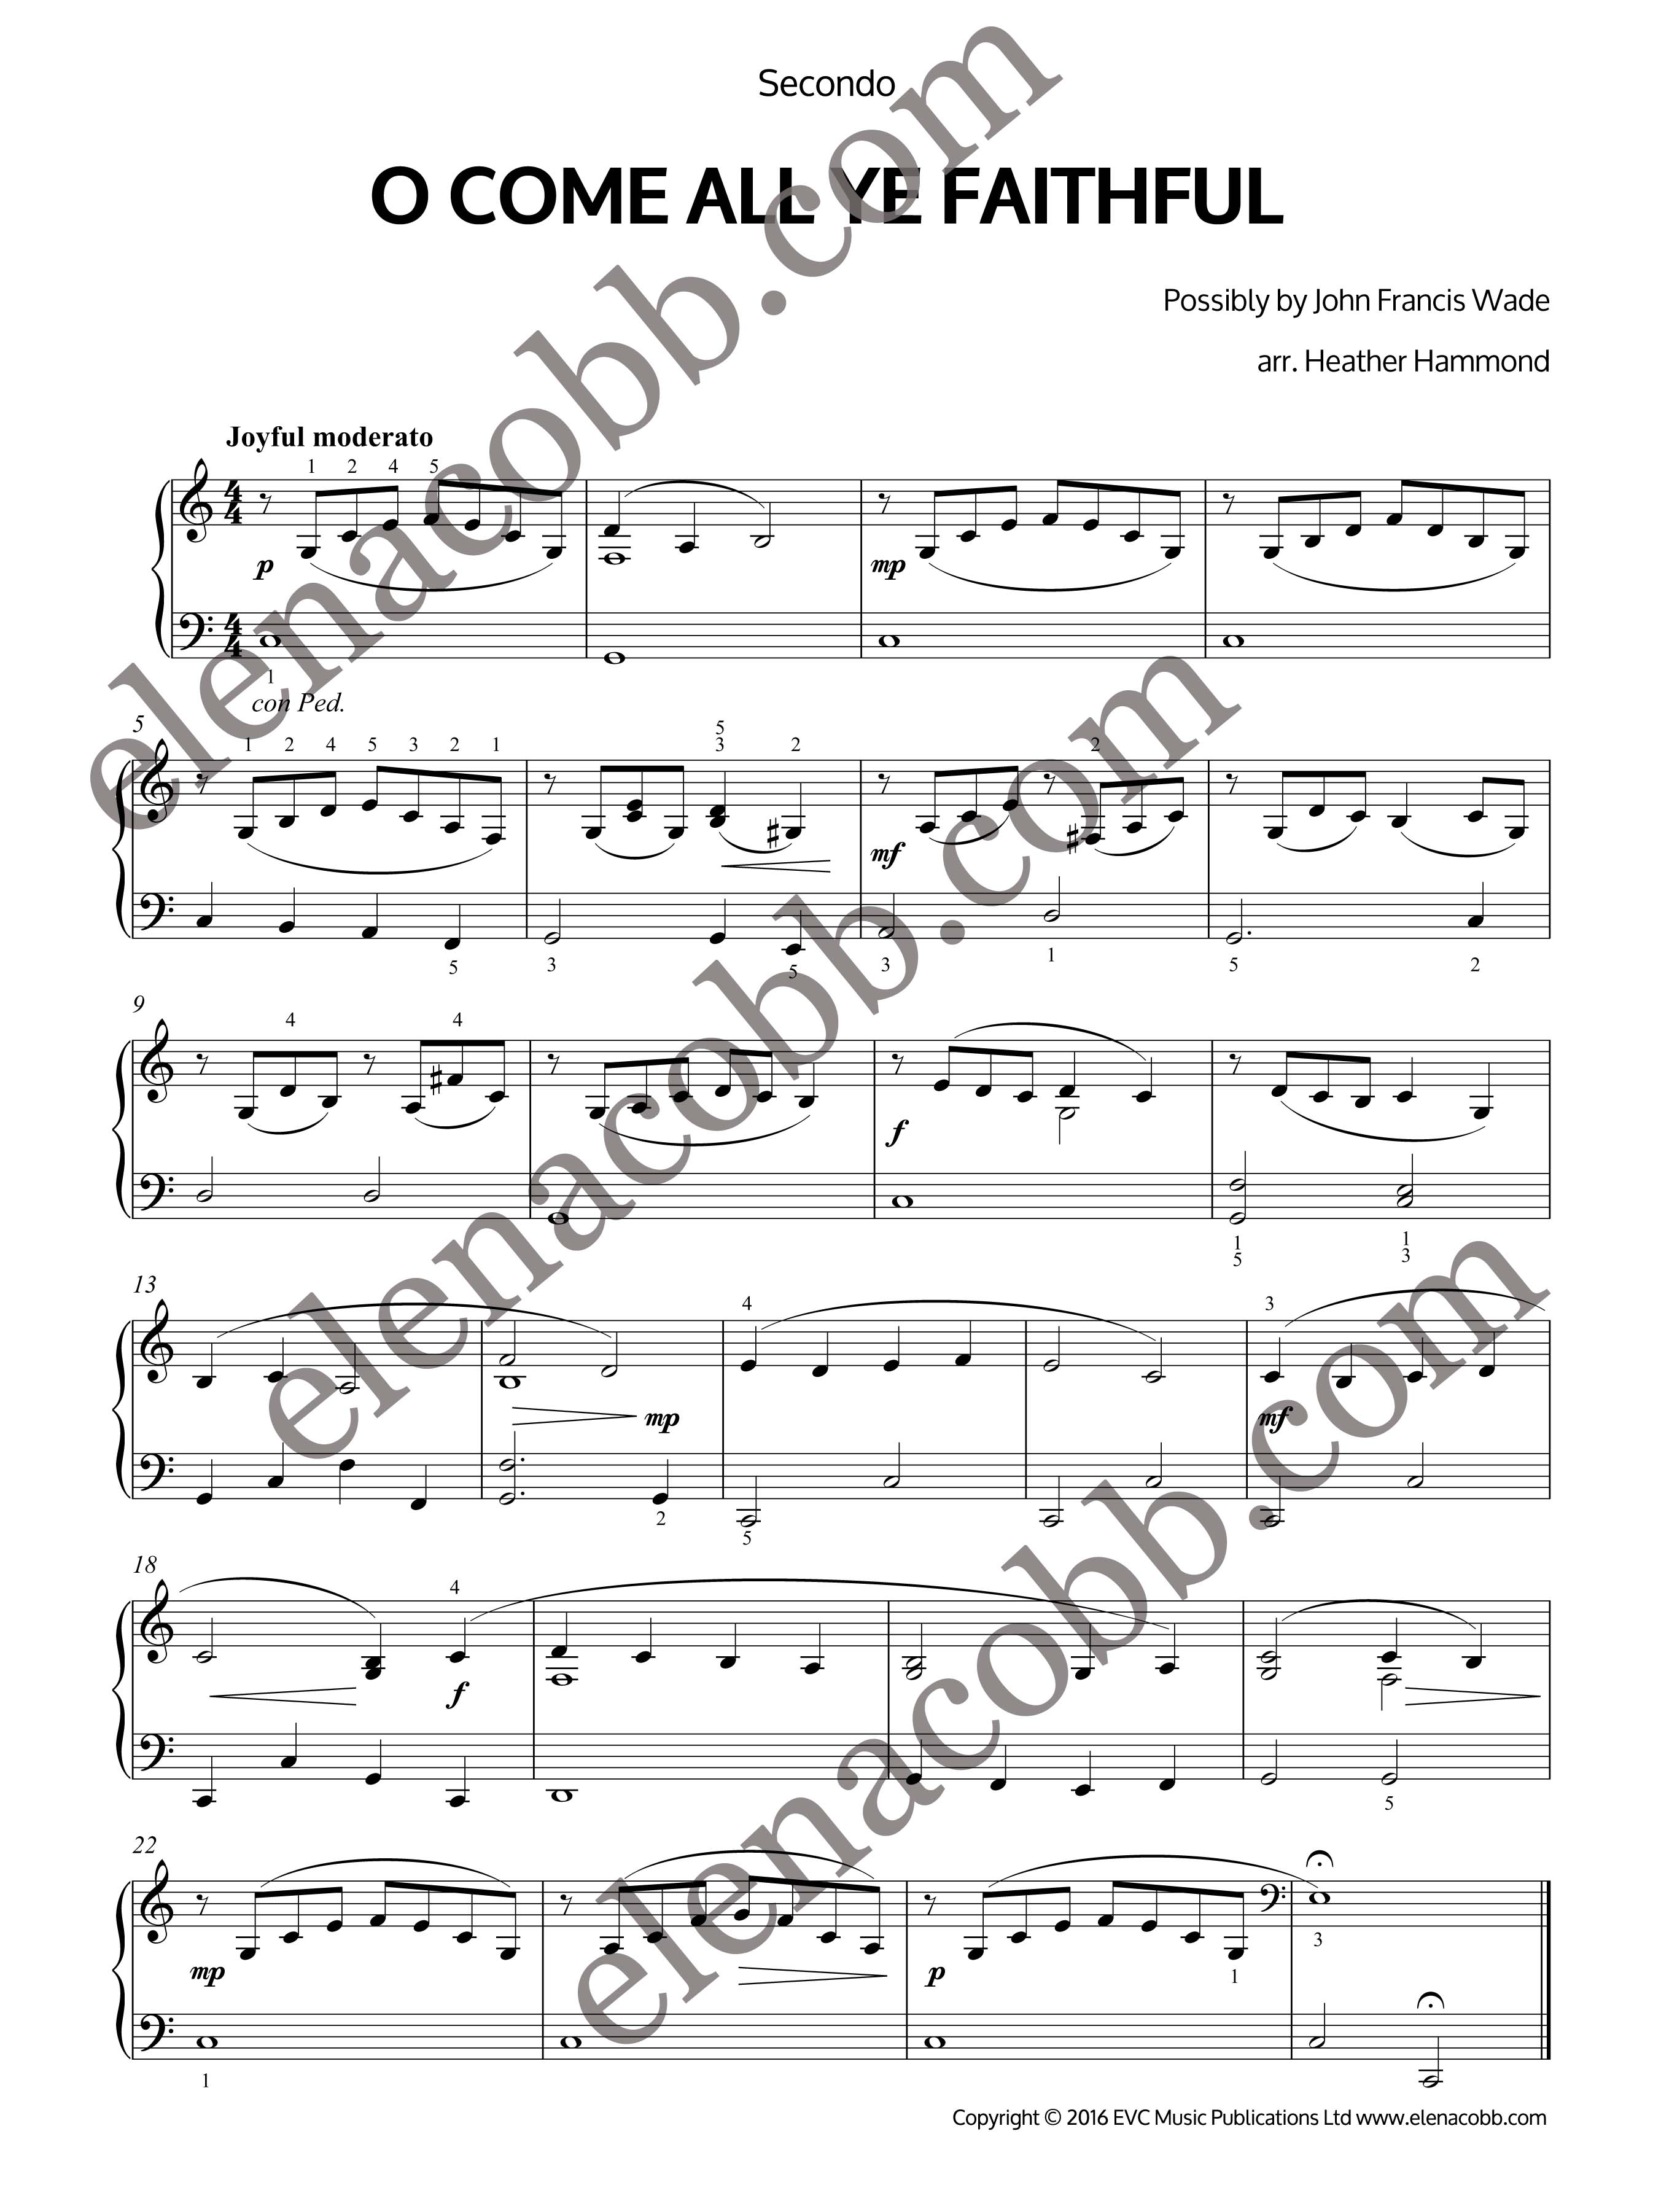 O come all ye faithful easy piano duet by heather hammond o come all yy faithful piano duet heather hammond hexwebz Image collections